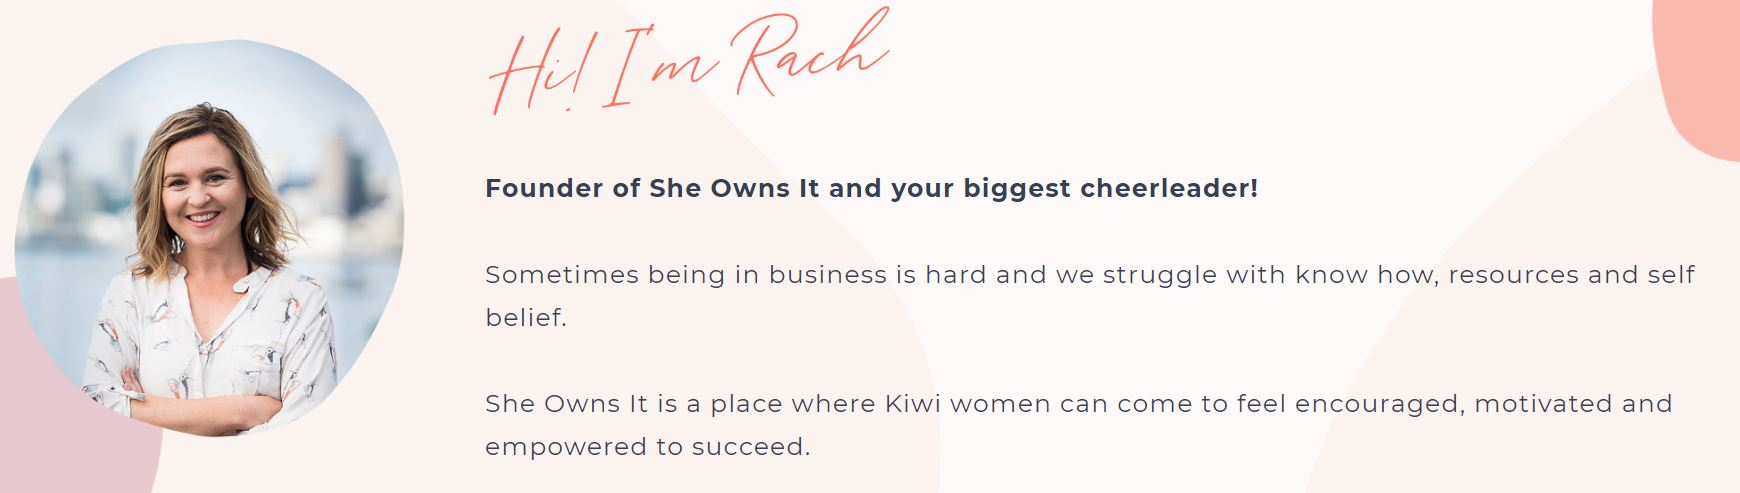 She Owns It NZ - Content Manager